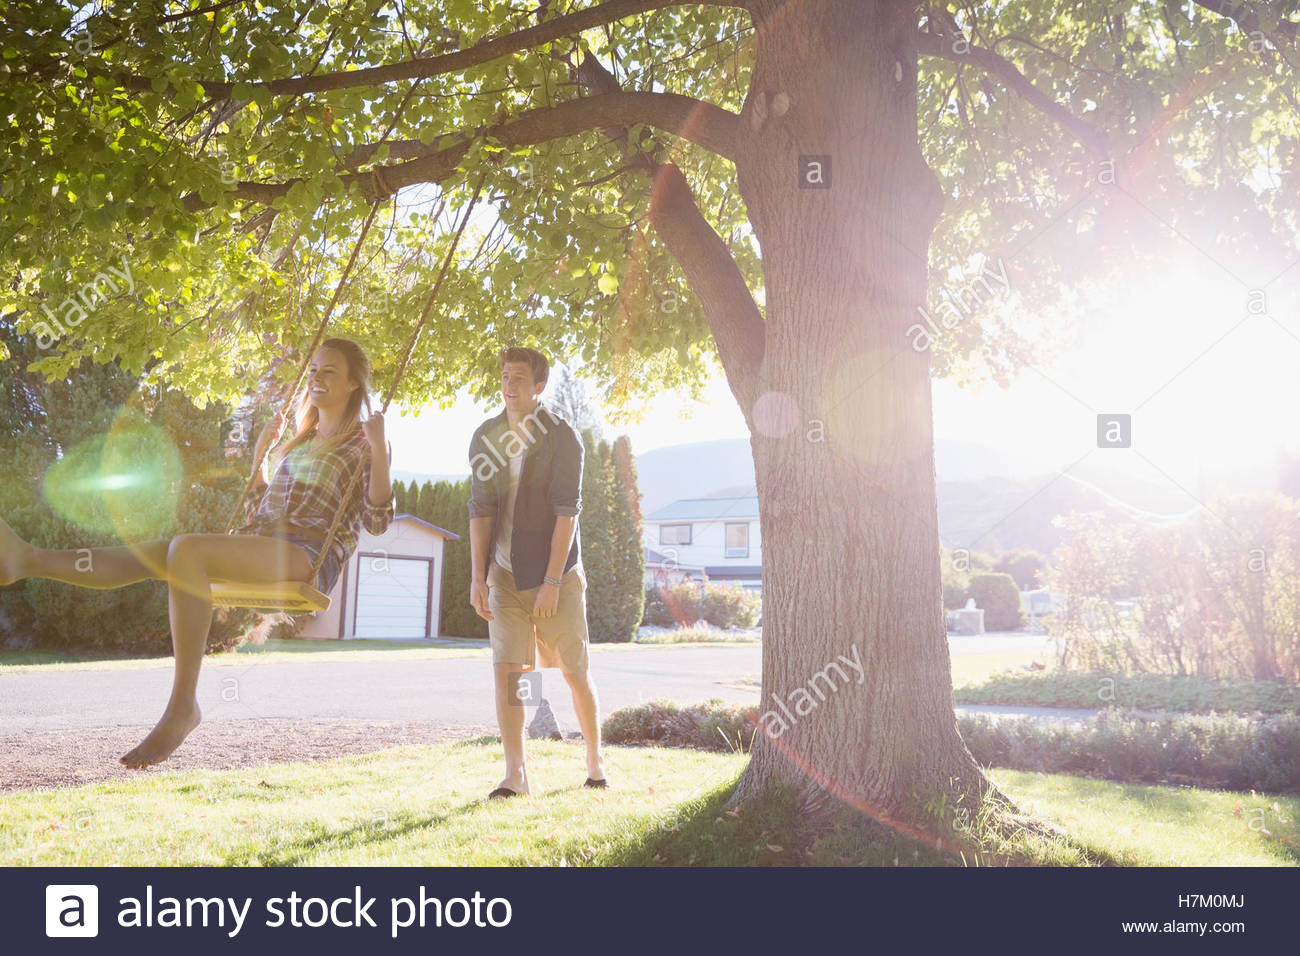 Young couple swinging at tree swing in sunny summer yard - Stock Image